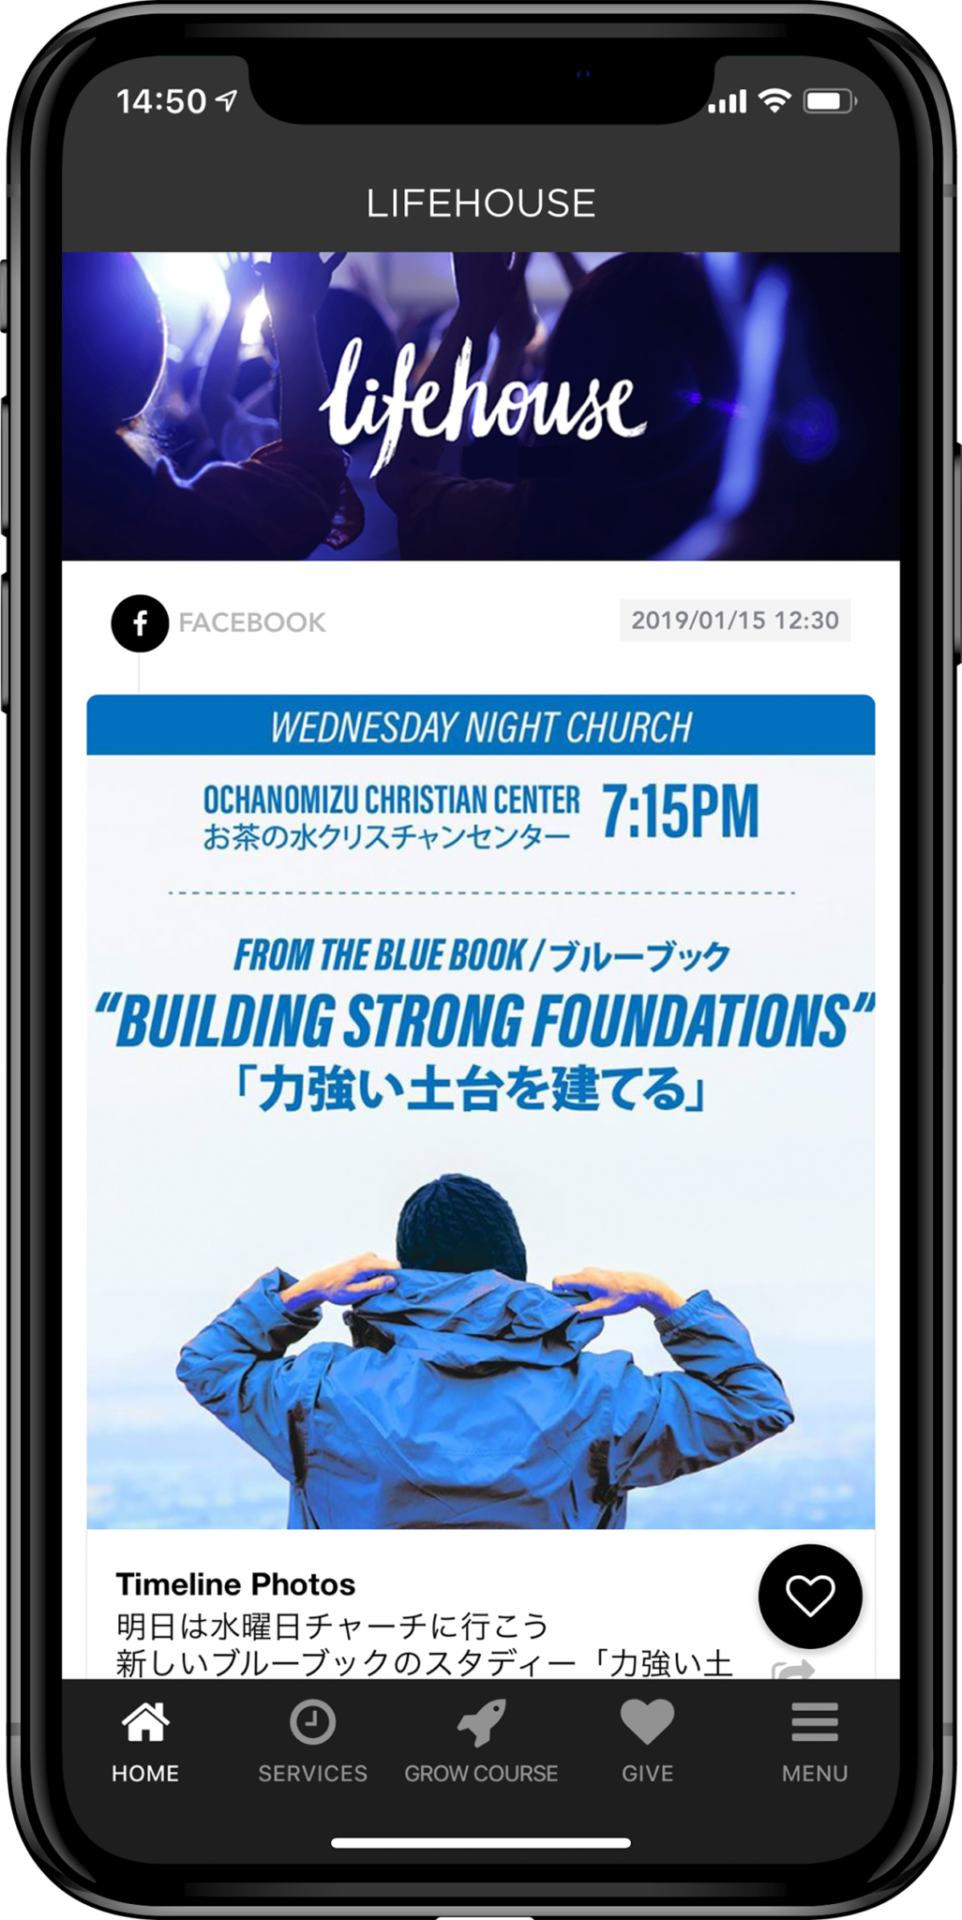 LIFEHOUSE APP | Lifehouse International Church